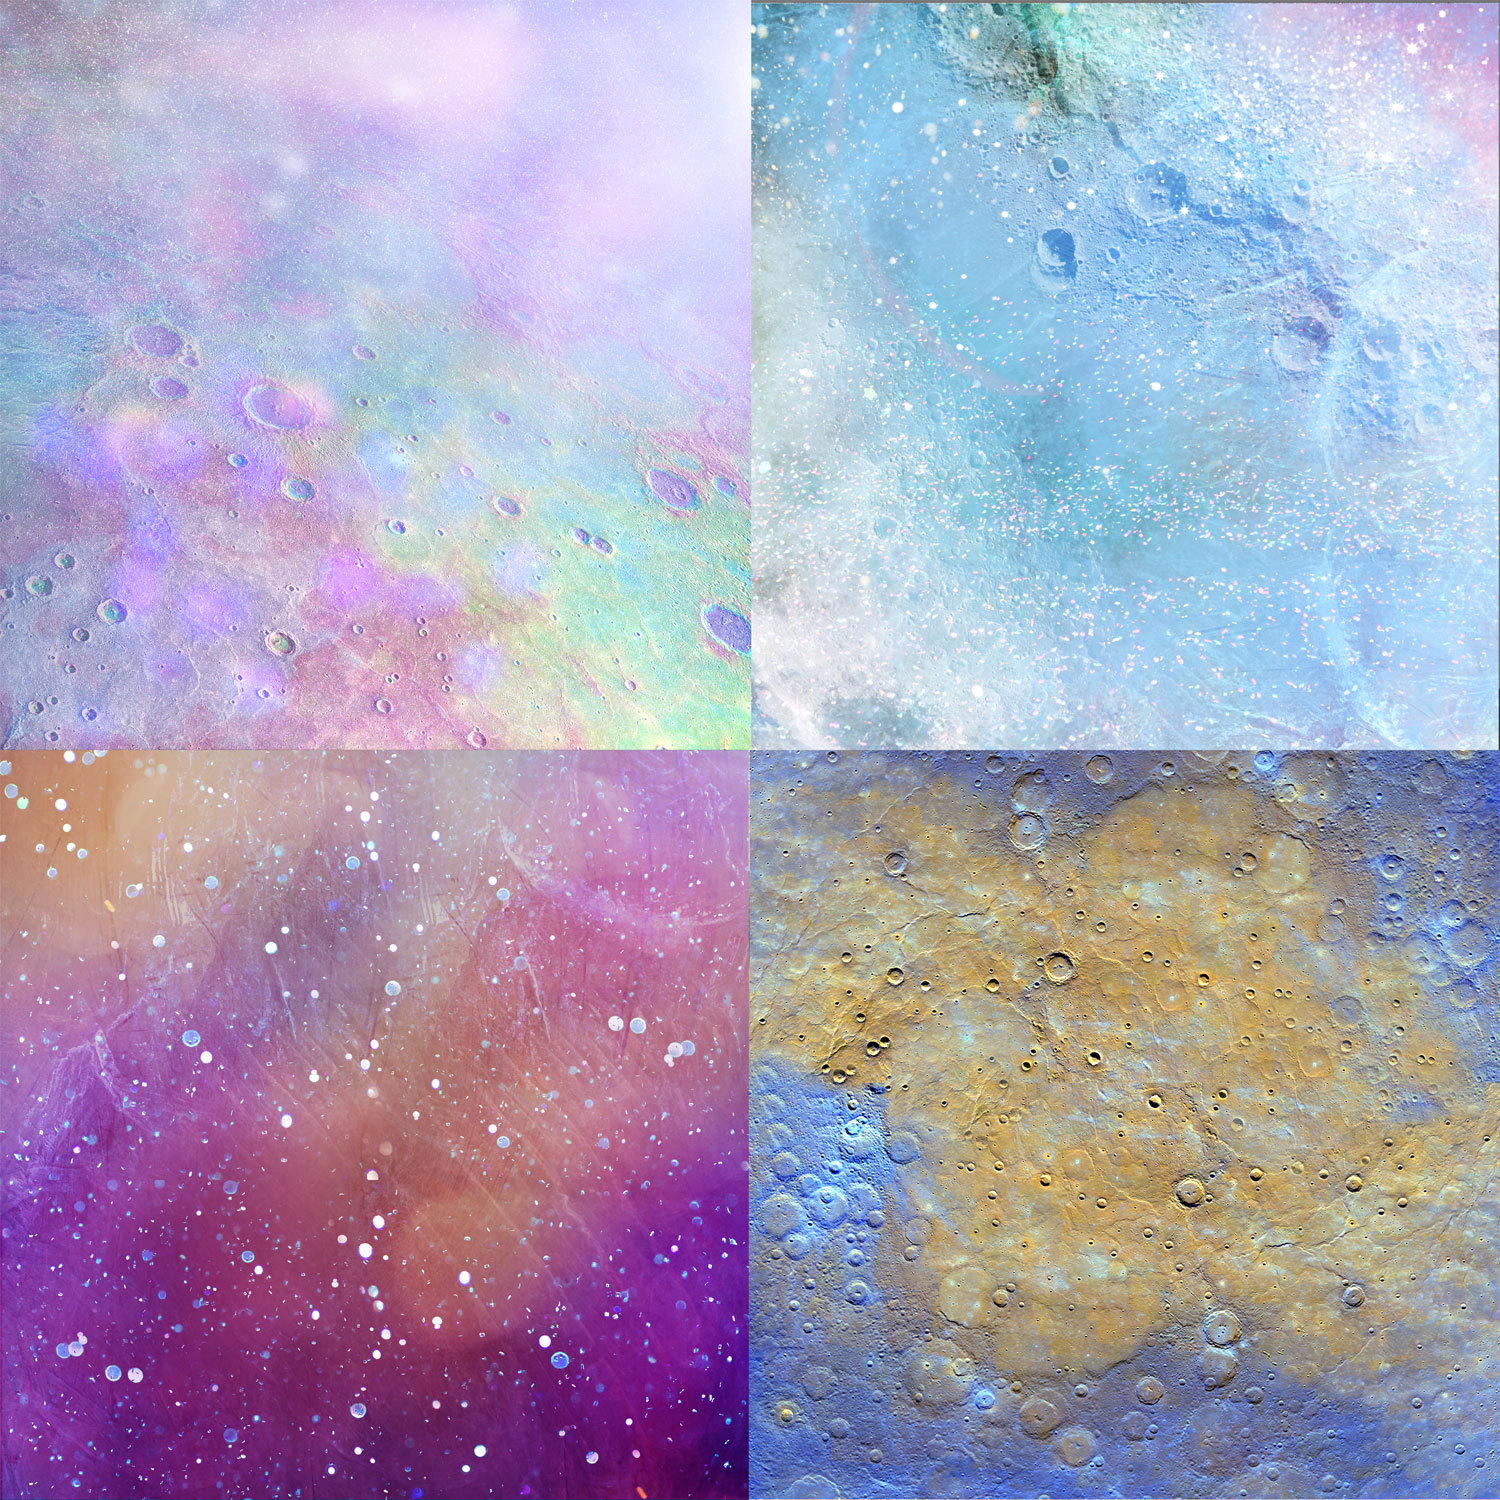 Outer Space Backgrounds example image 2